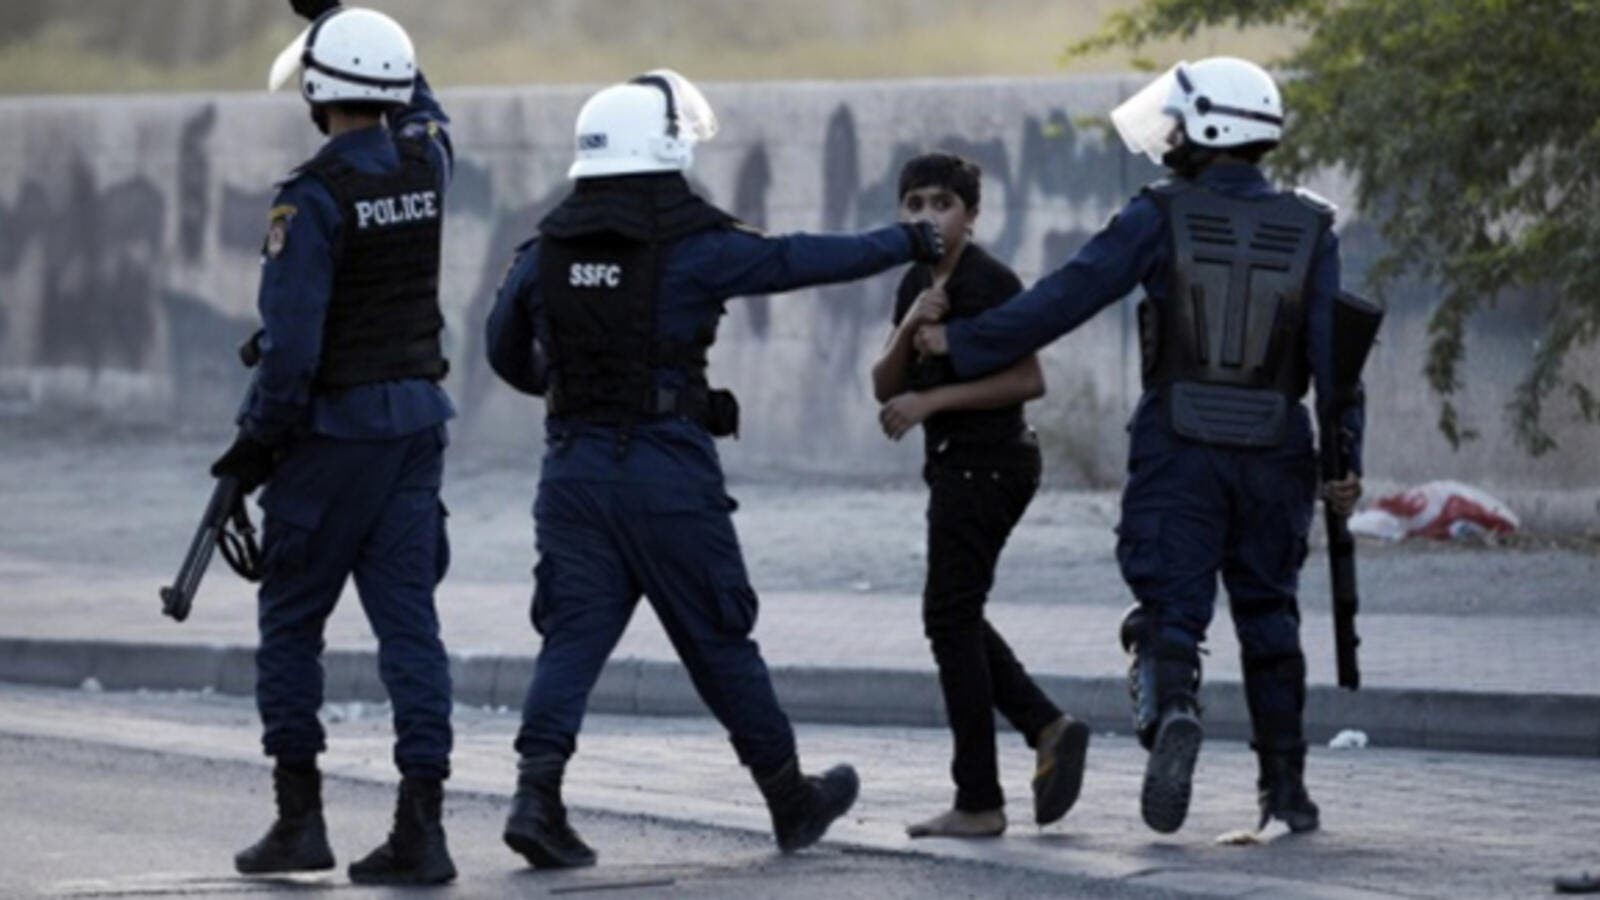 A Bahraini boy is arrested during clashes with riot police in the village of Daih, west of Manama on 19 June, 2014. (AFP)